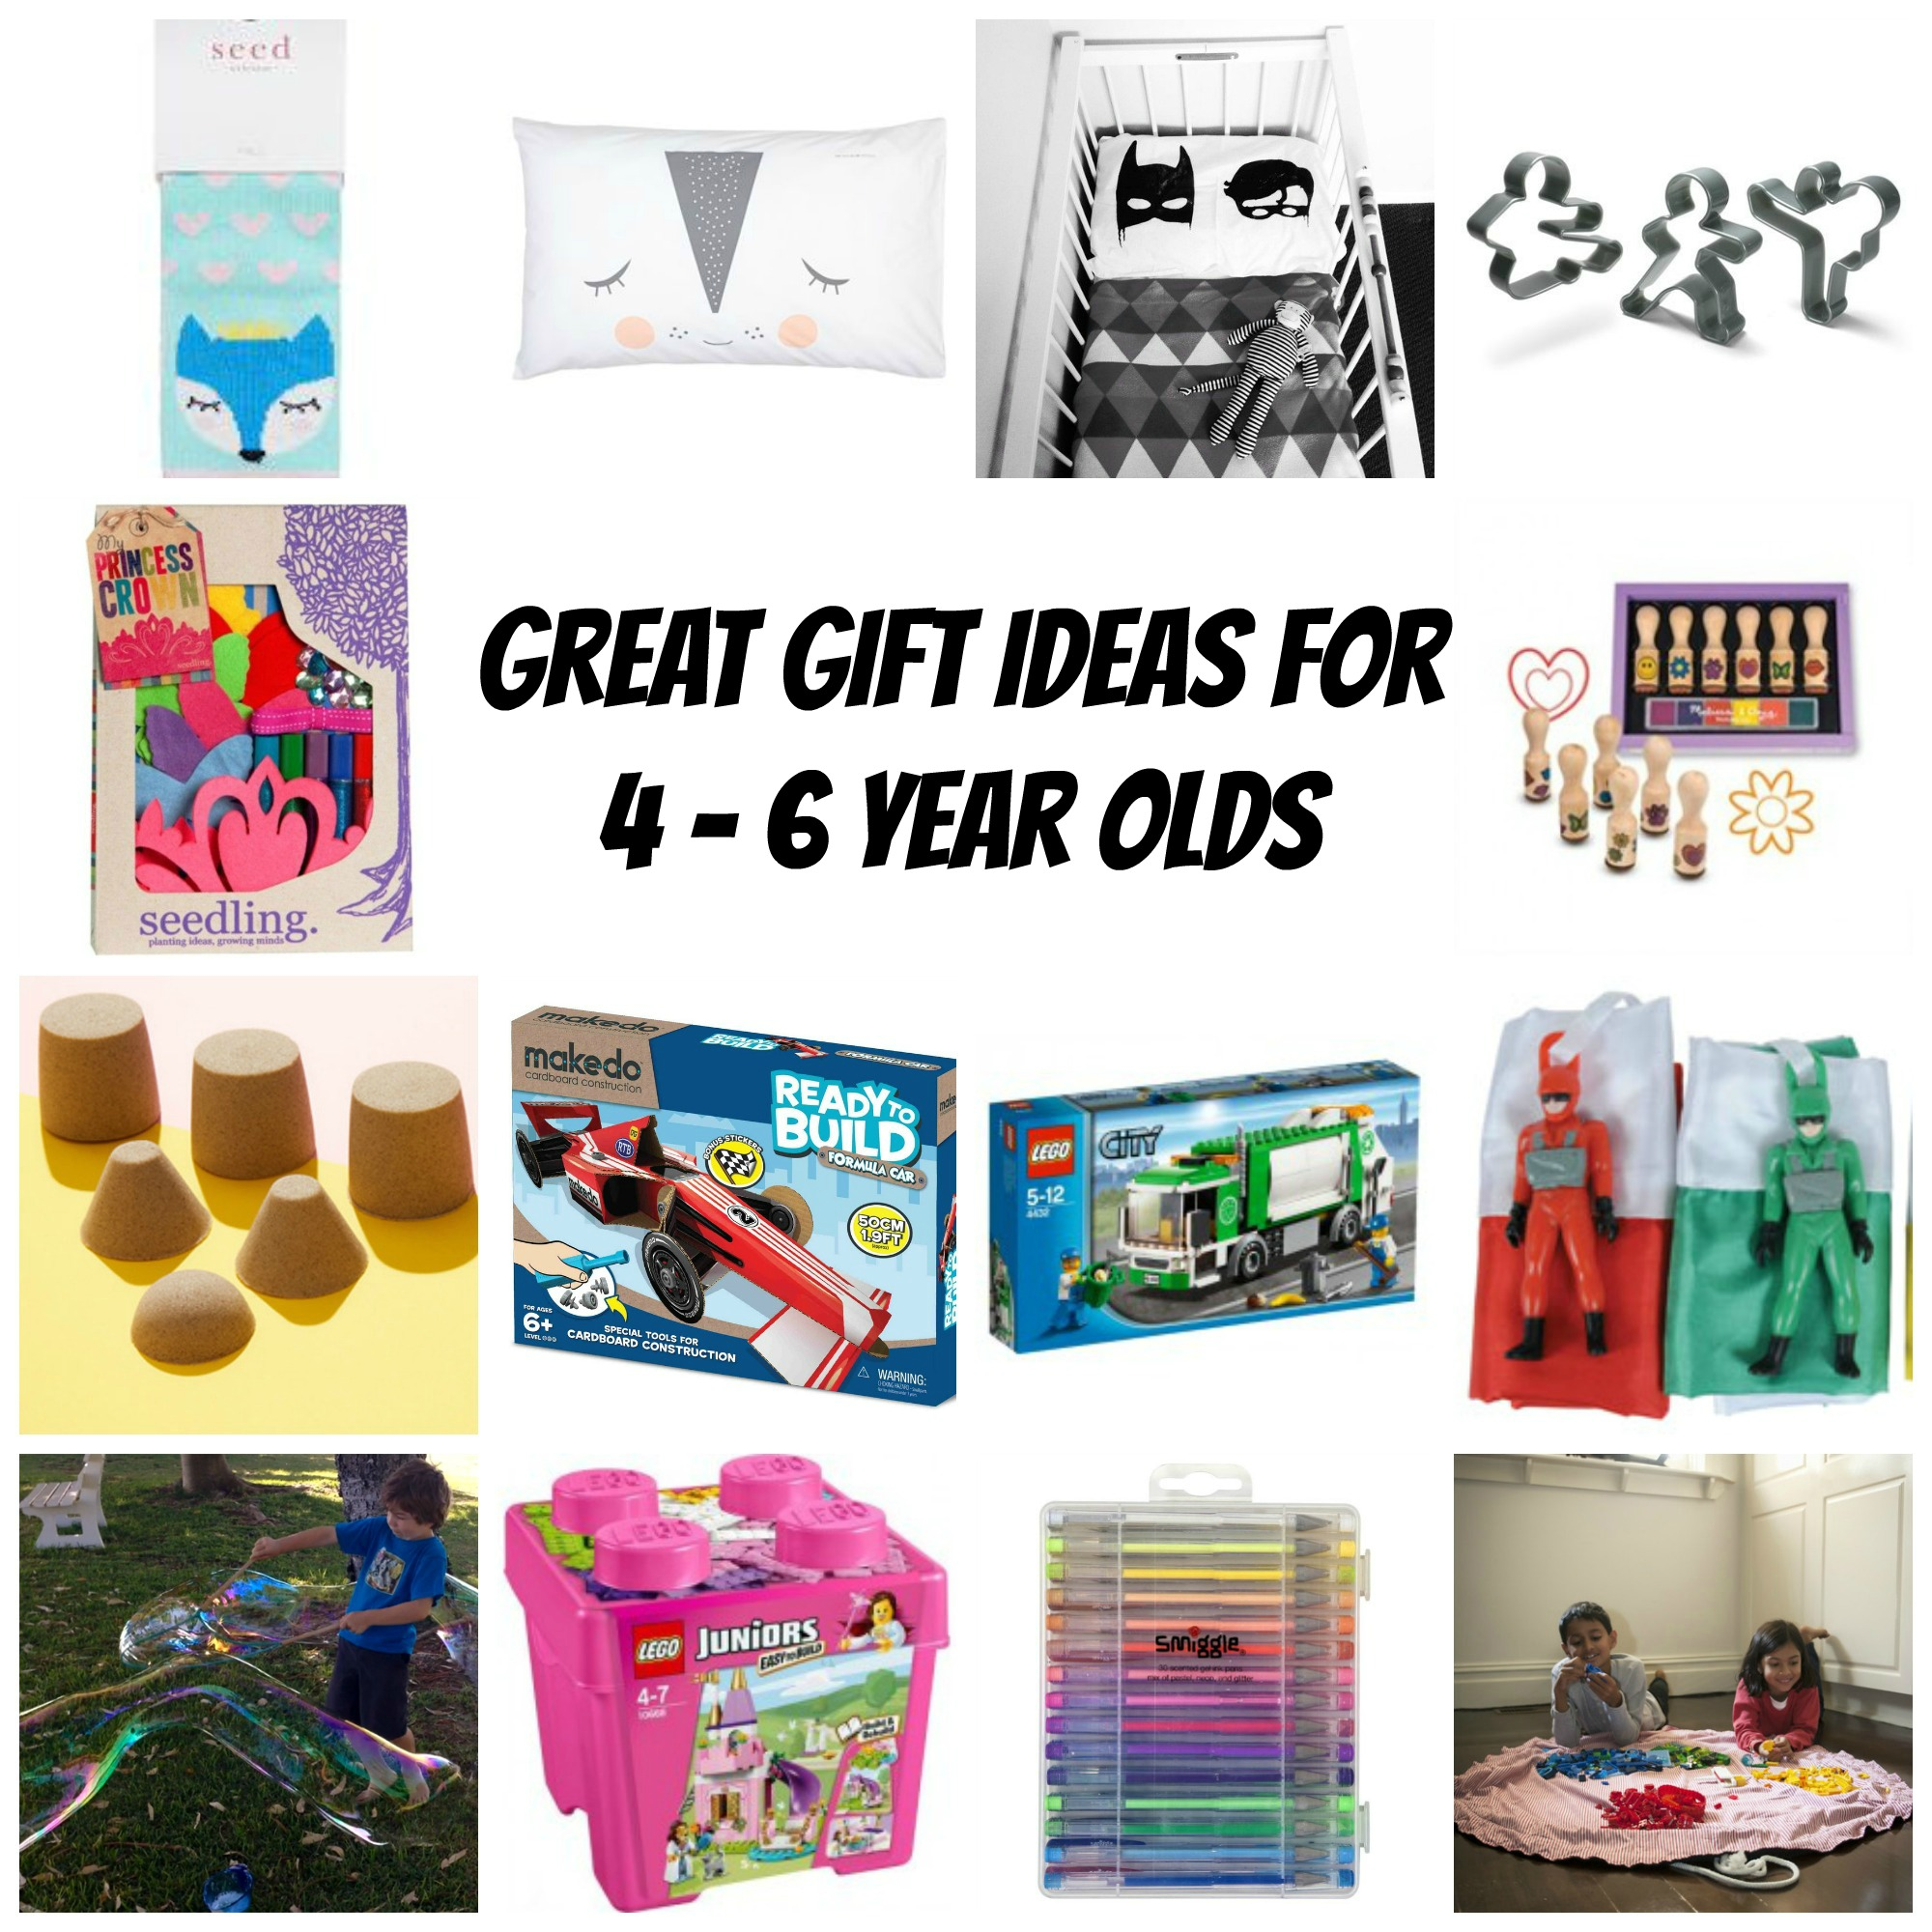 Great gift ideas for 4 - 6 year olds | giftgrapevine.com.au